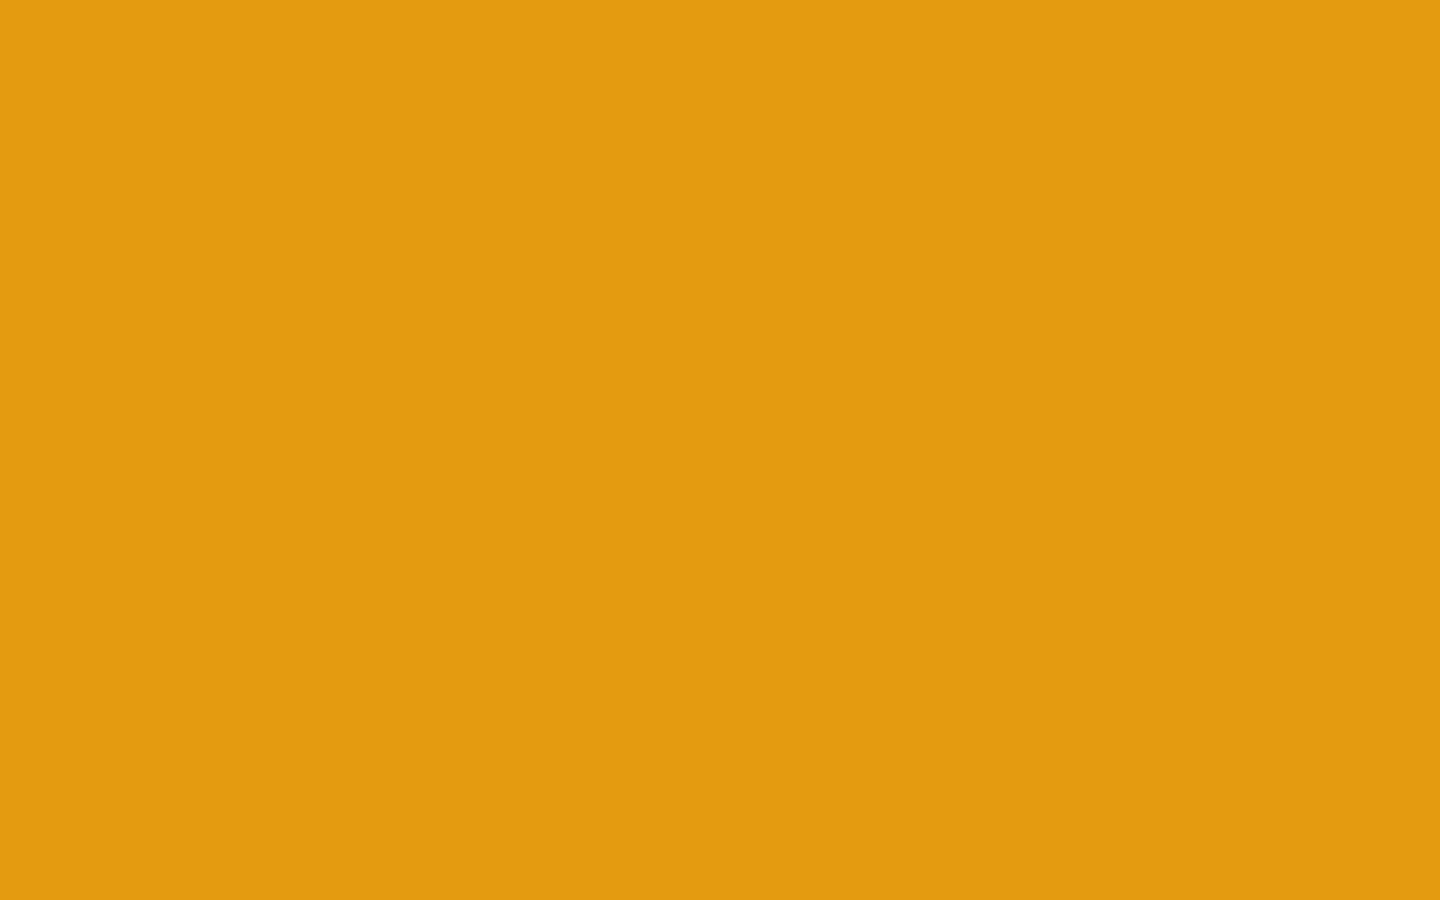 1440x900 Gamboge Solid Color Background